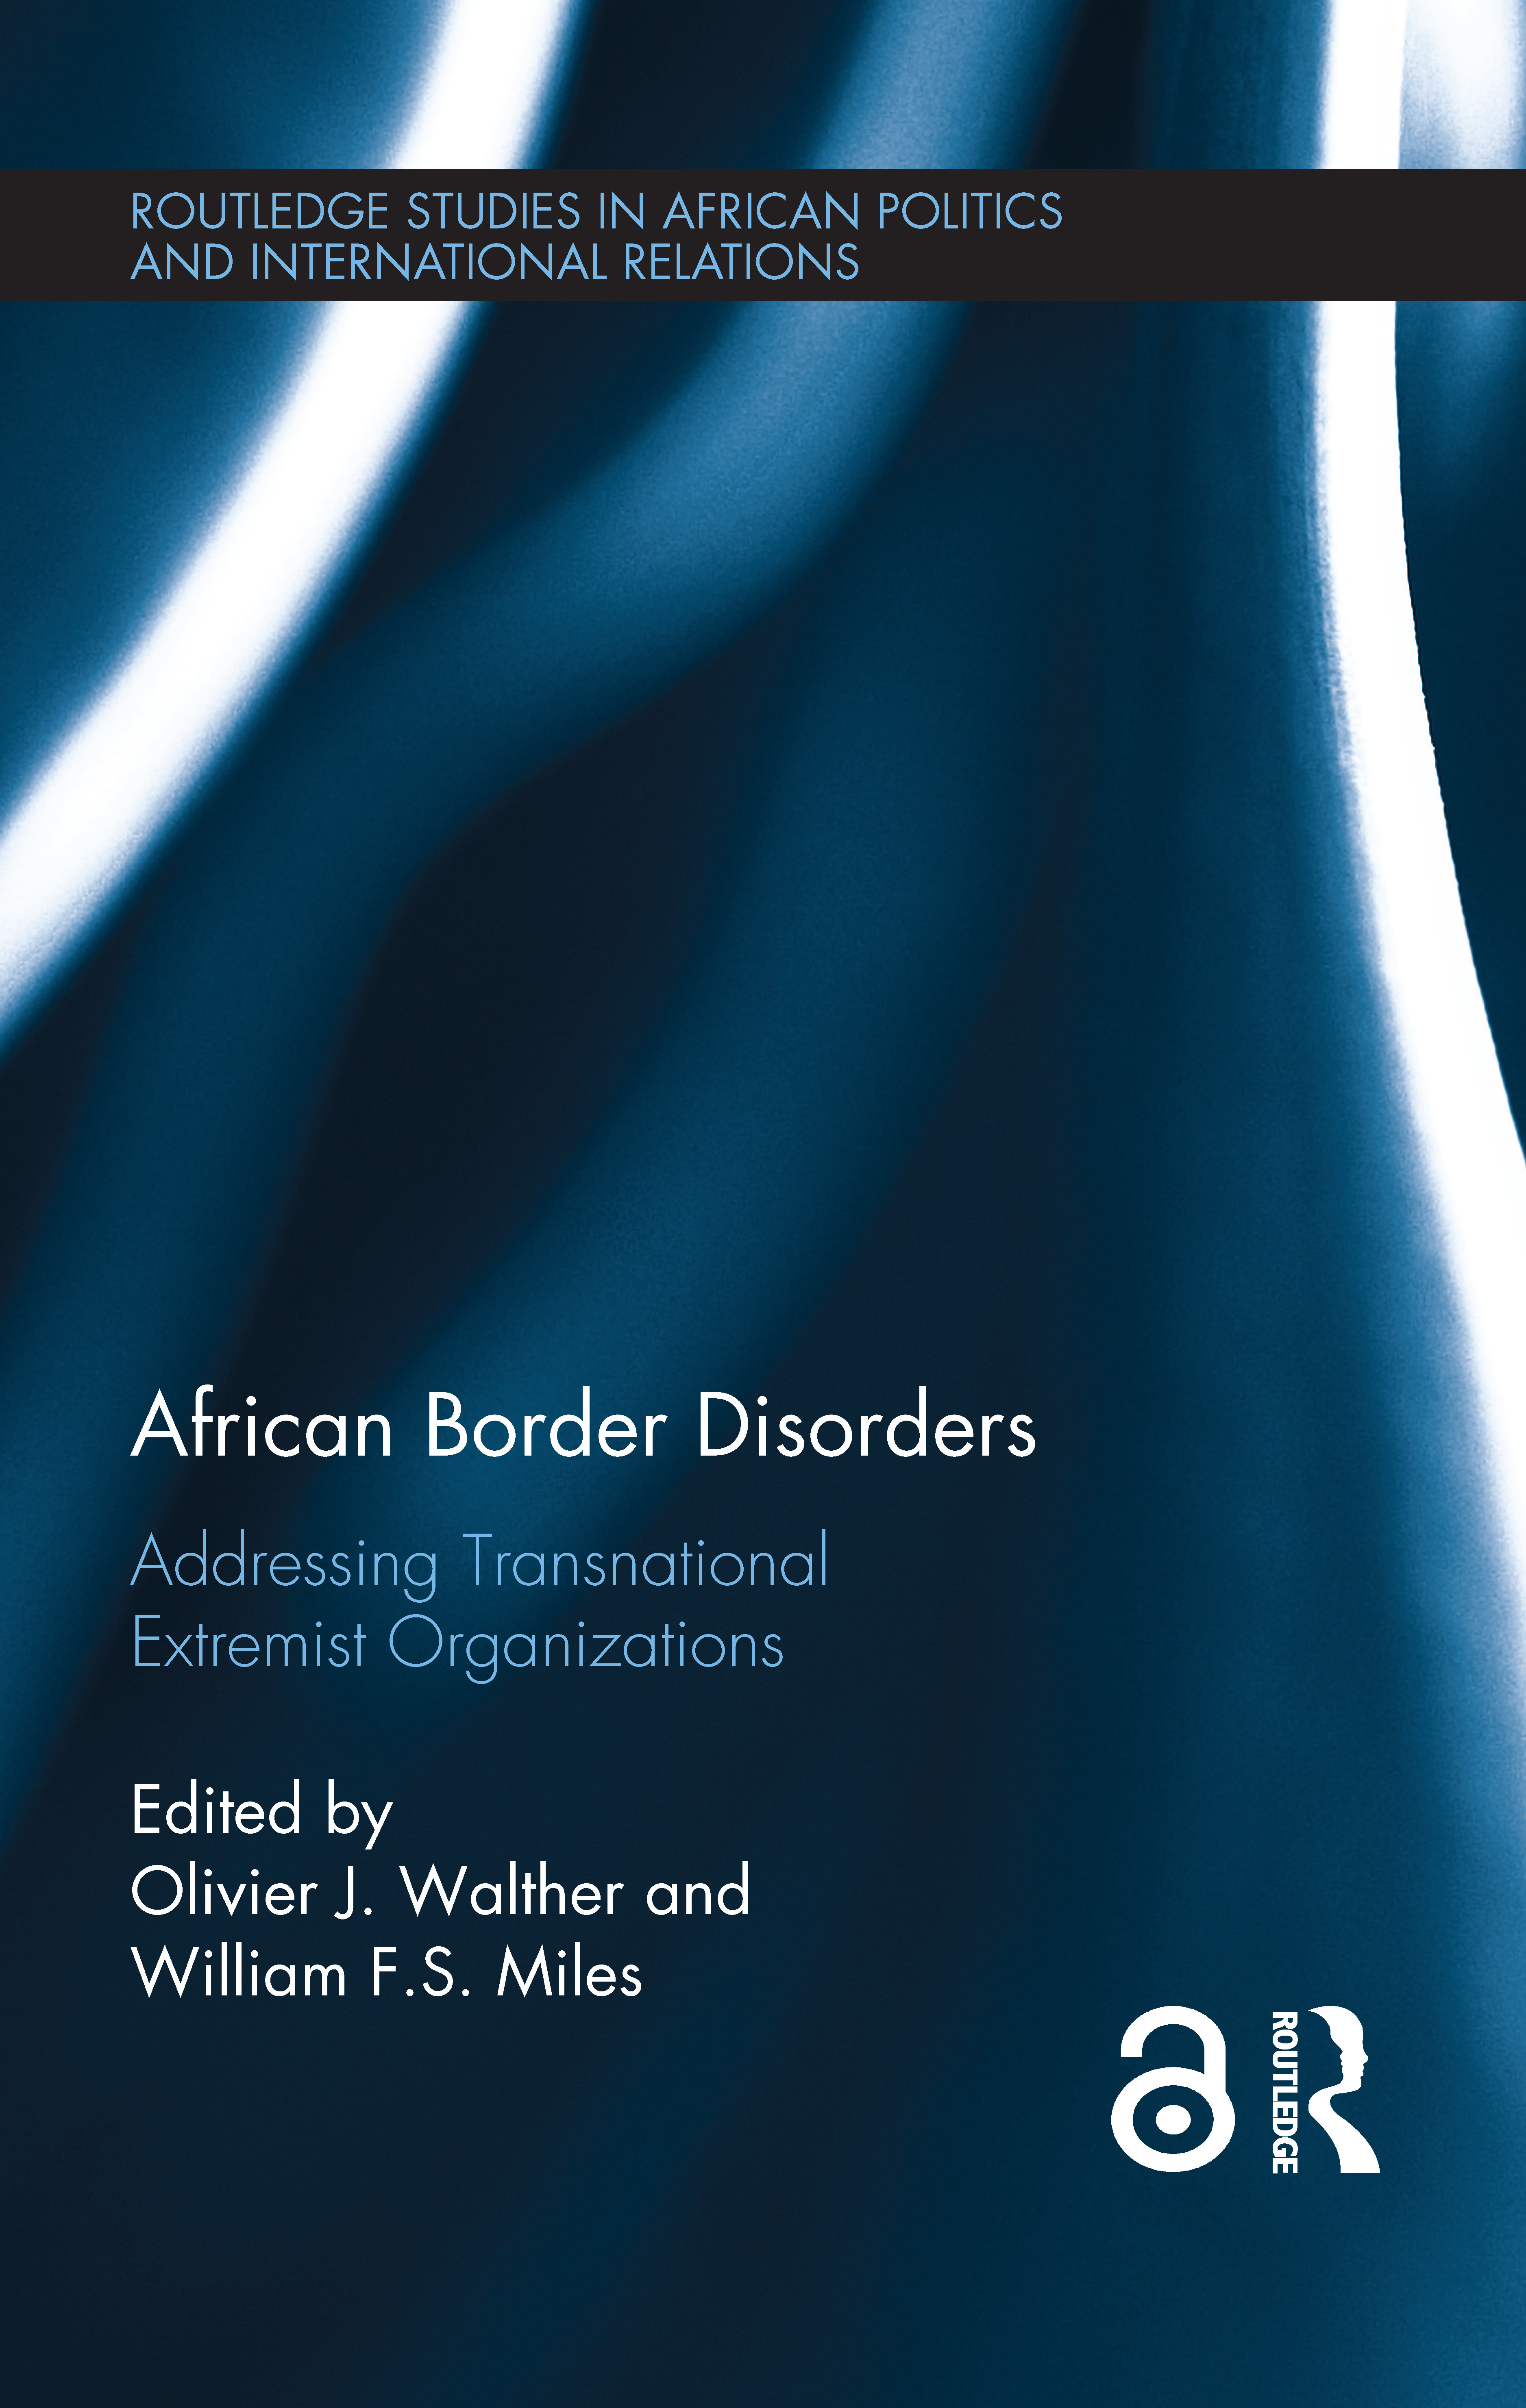 African Border Disorders: Addressing Transnational Extremist Organizations book cover